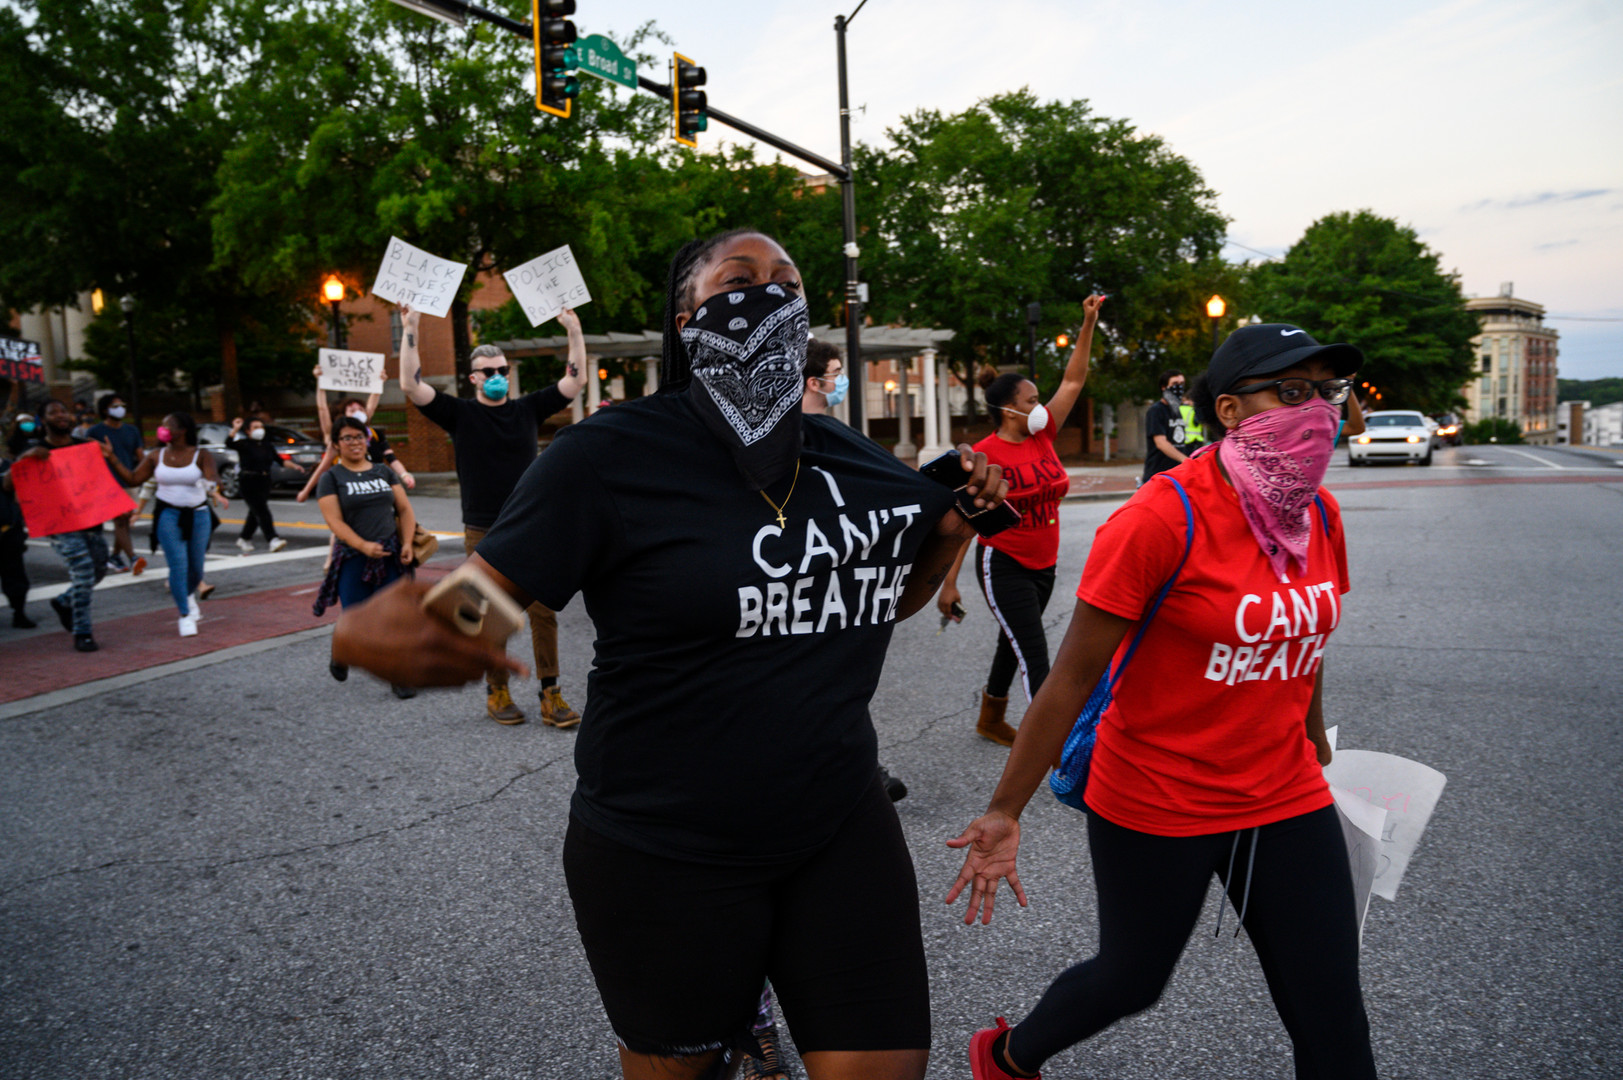 Protesters march and chant in Athens, Georgia on Sunday, May 31, 2020. Two non-violent protests joined together at the UGA arch, both calling for racial justice and an end to police brutality following the death of George Floyd in Minneapolis six days earlier.